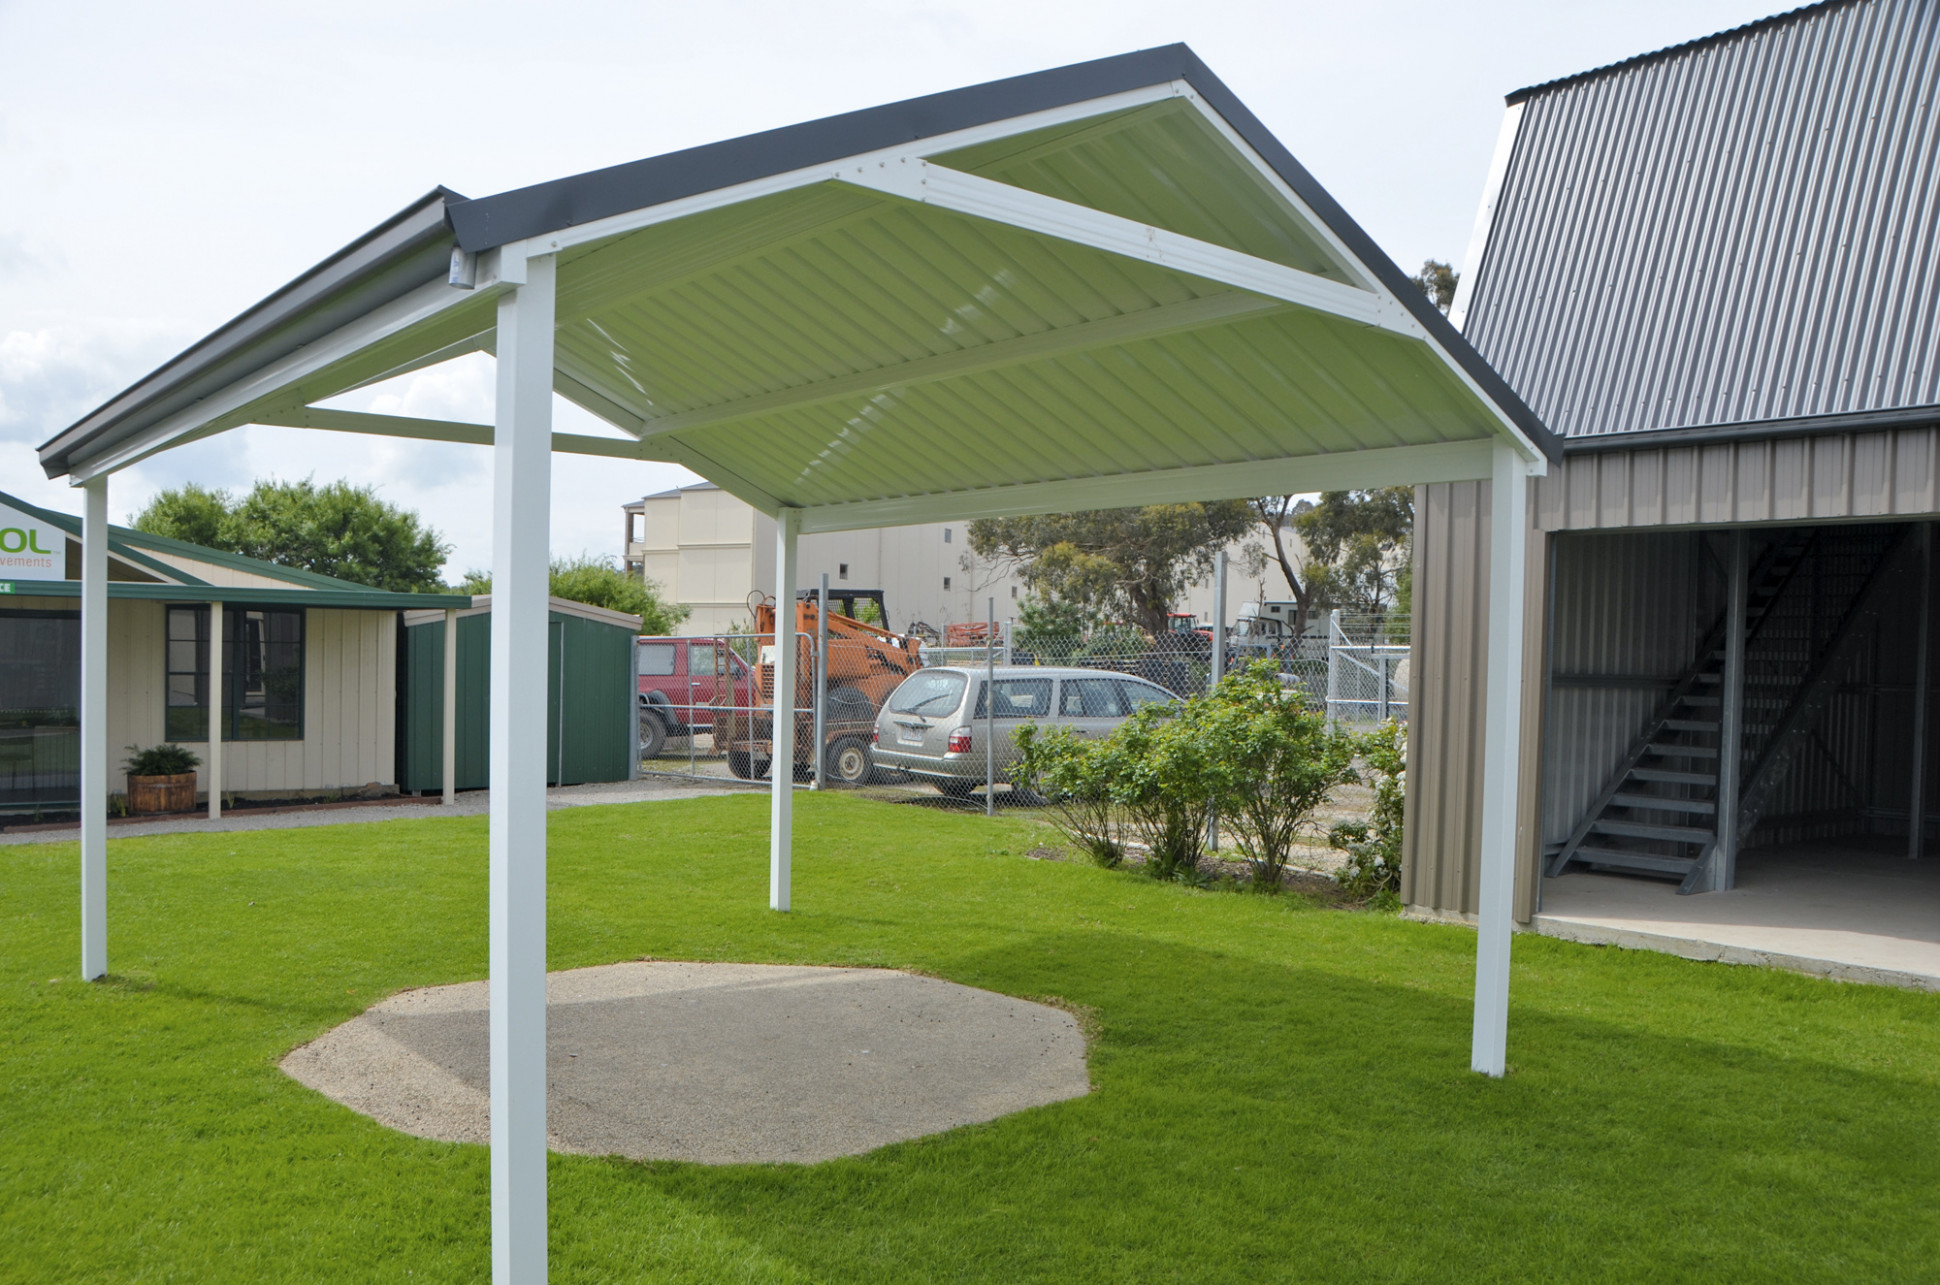 SOL Home Improvements, Gallery Of Steel Roof Styles Carport Green Roof